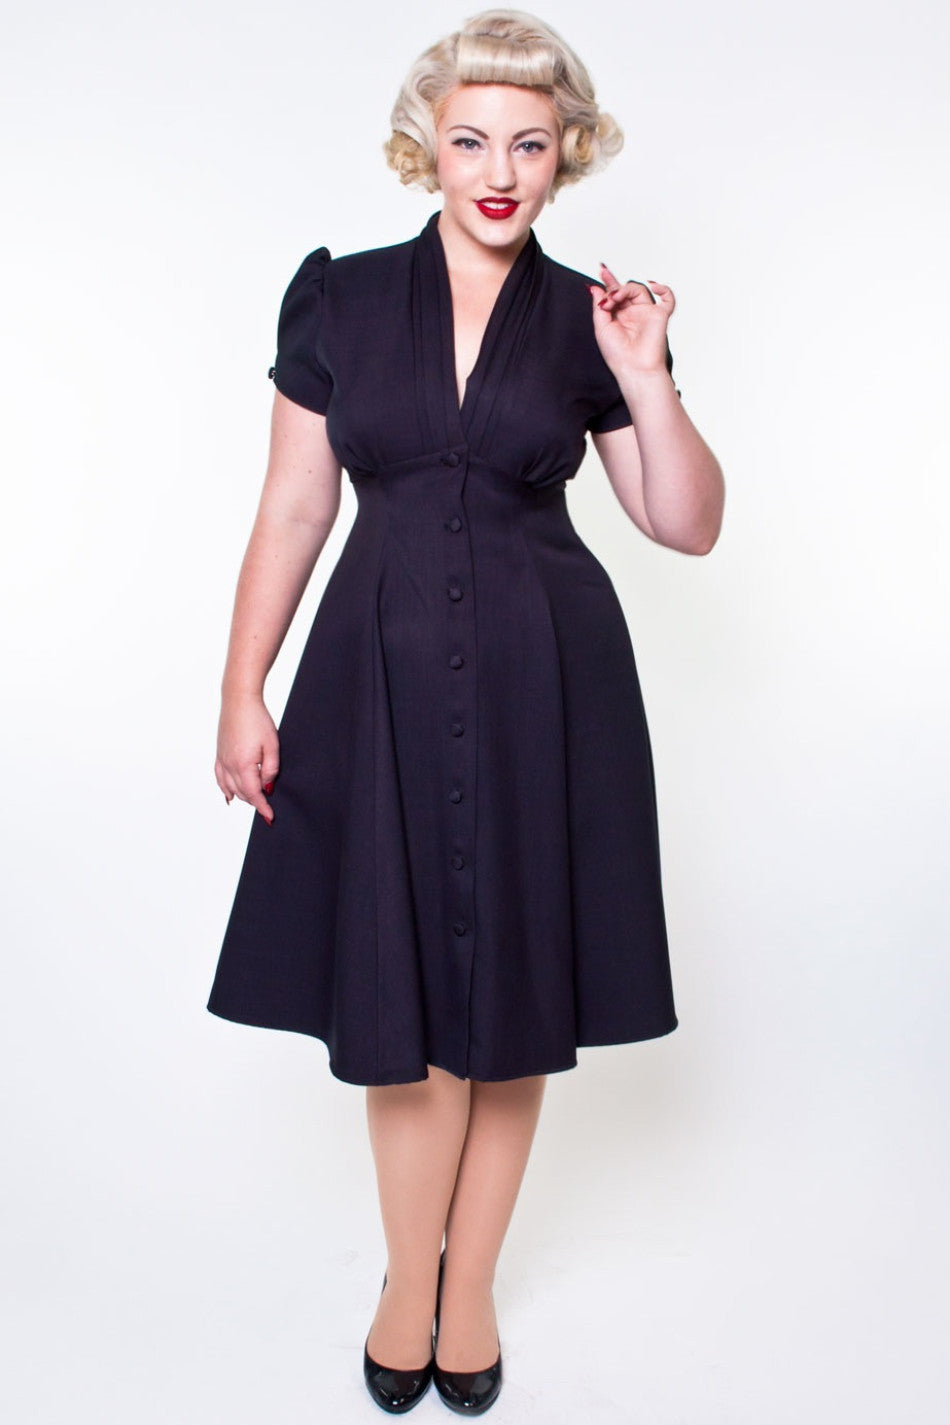 1940s Cocktail Dresses, Party Dresses Manhattan Dress - Black $120.00 AT vintagedancer.com